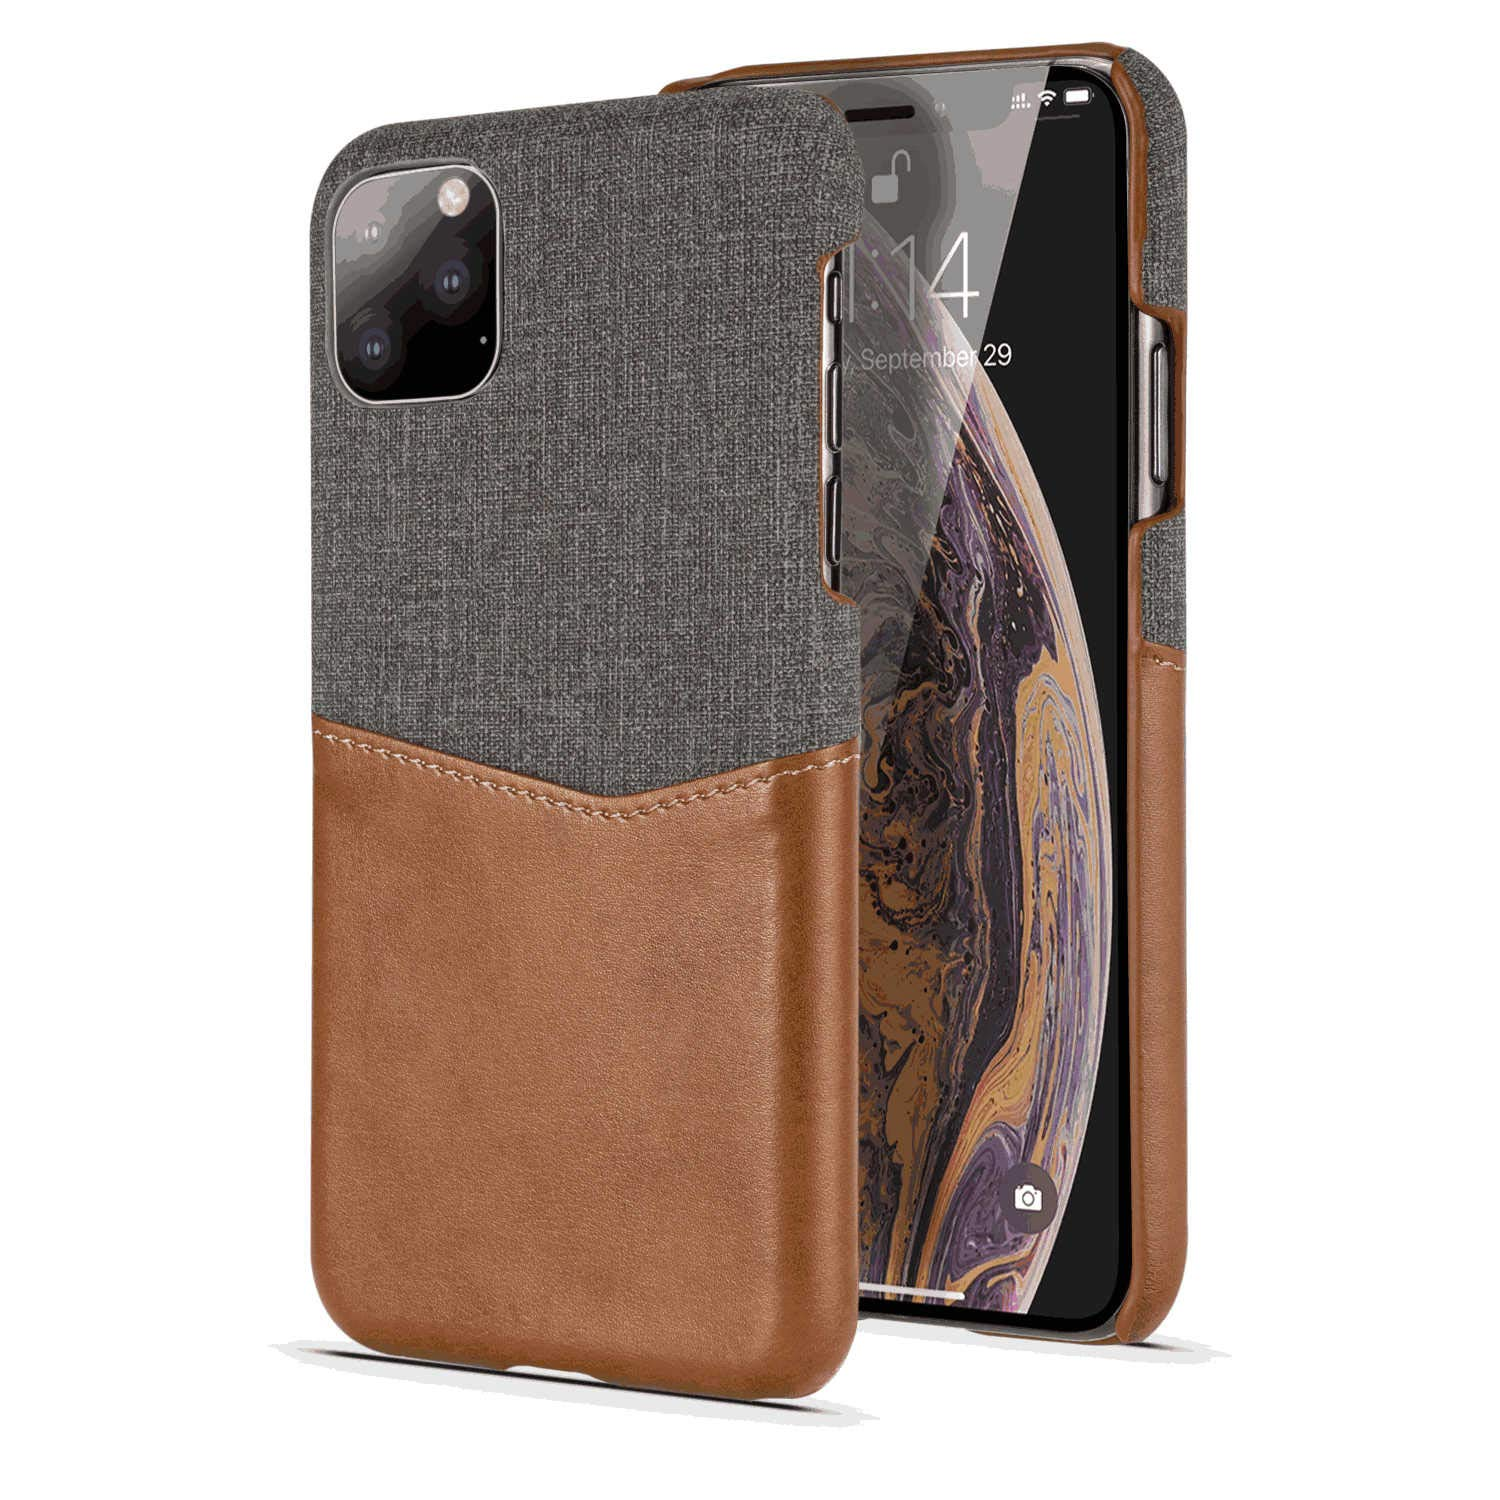 Leather Flip Case Fit for Samsung Galaxy S10 Plus Brown Wallet Cover for Samsung Galaxy S10 Plus